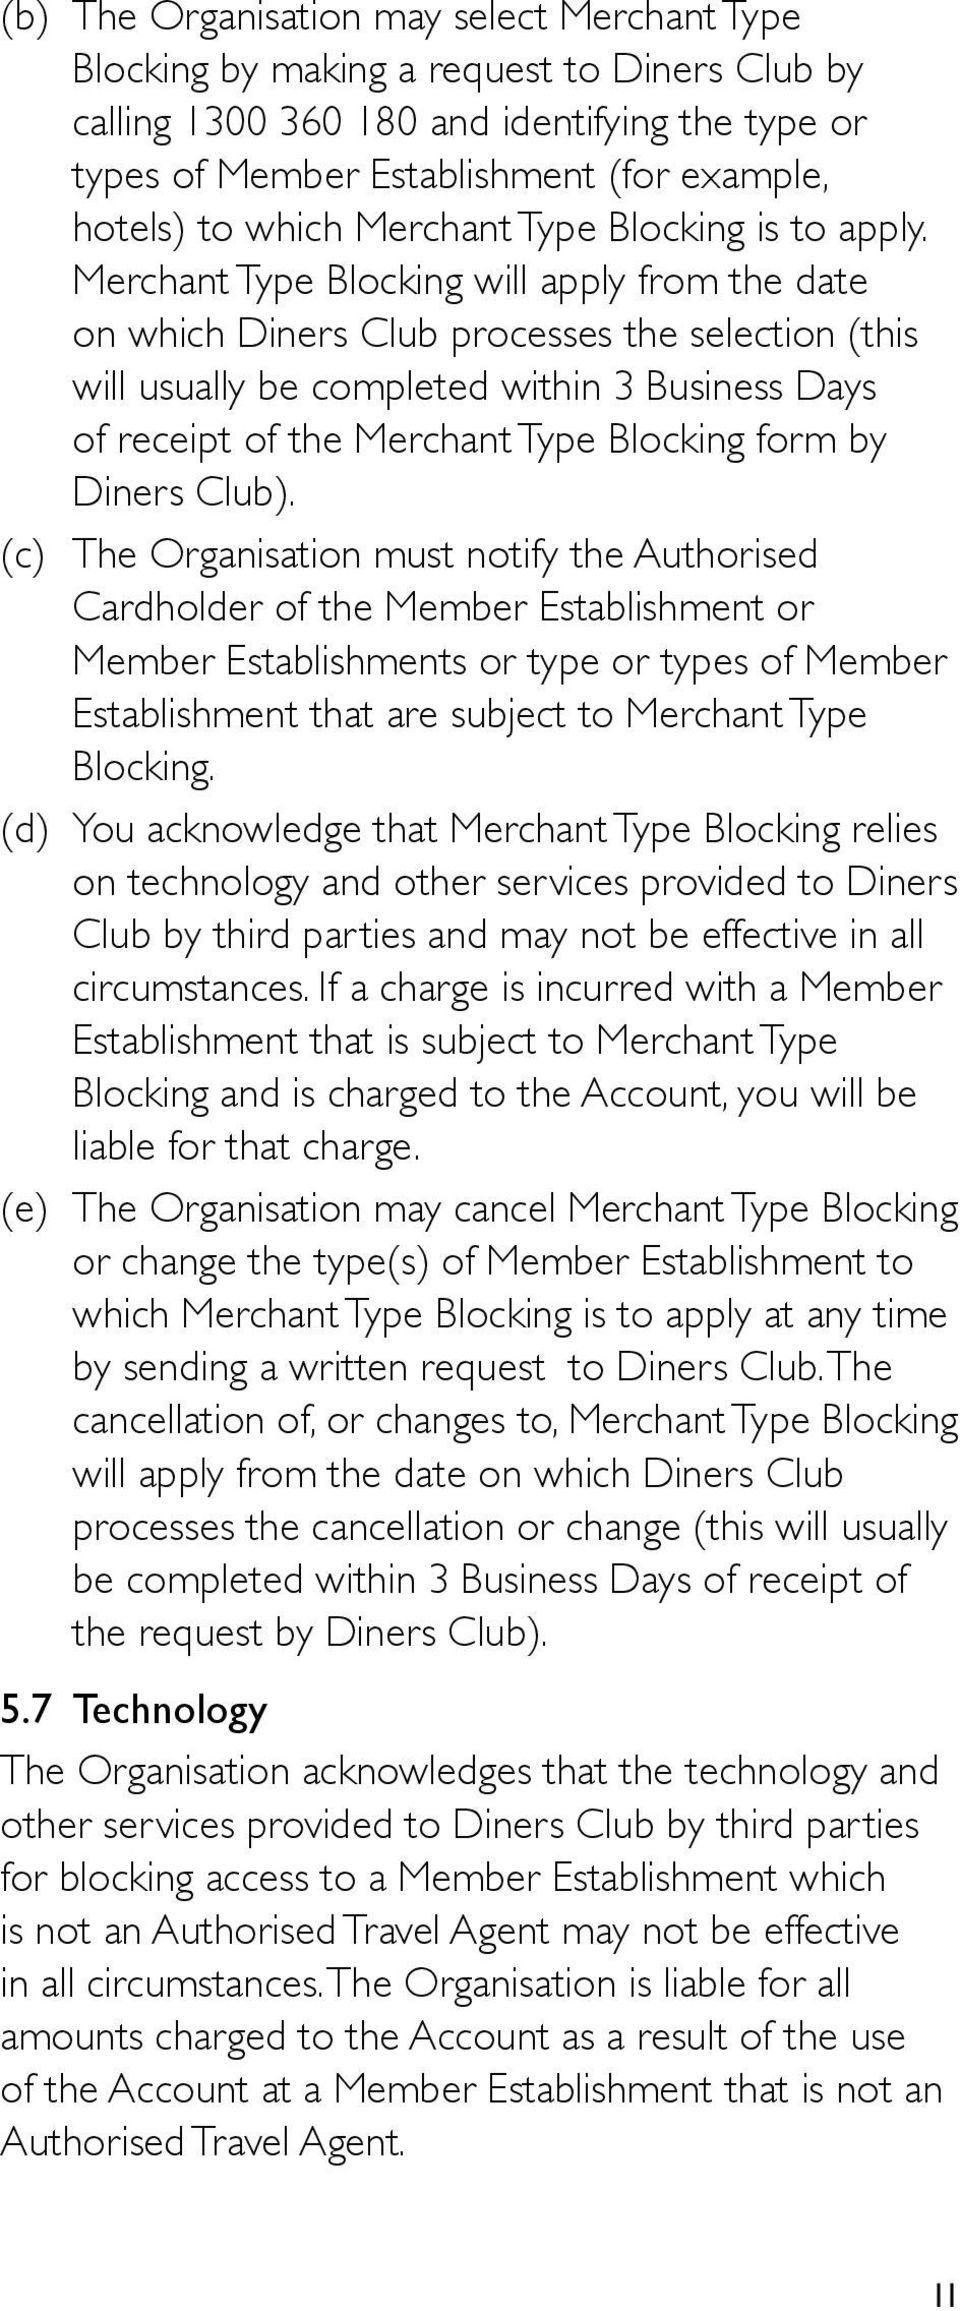 Merchant Type Blocking will apply from the date on which Diners Club processes the selection (this will usually be completed within 3 Business Days of receipt of the Merchant Type Blocking form by